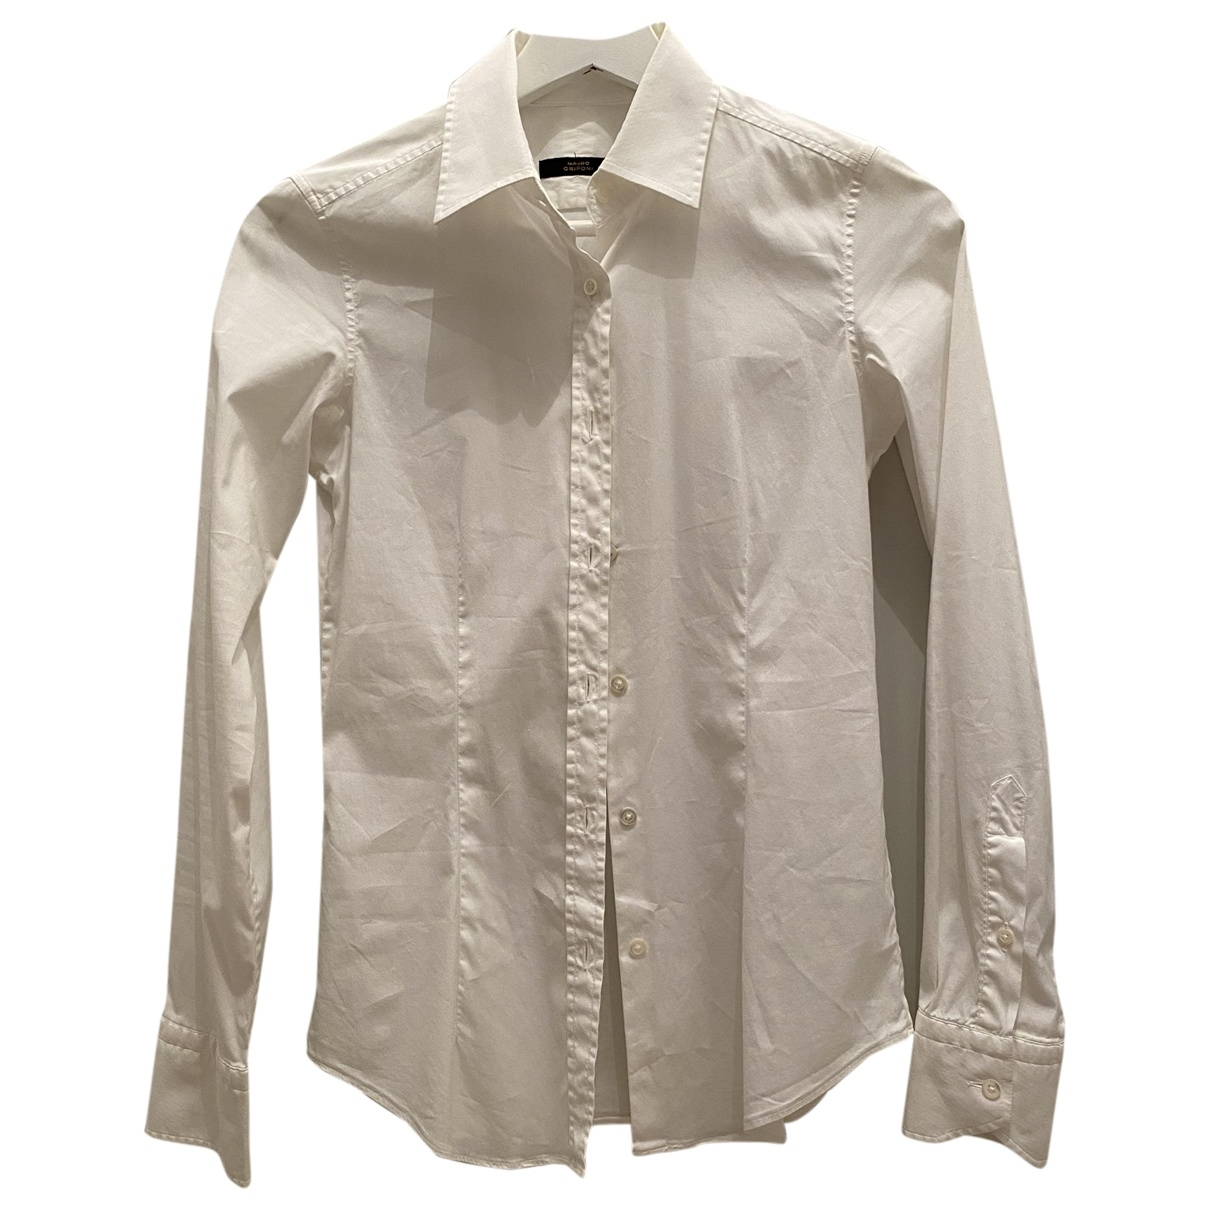 Mauro Grifoni \N White Cotton  top for Women 40 IT